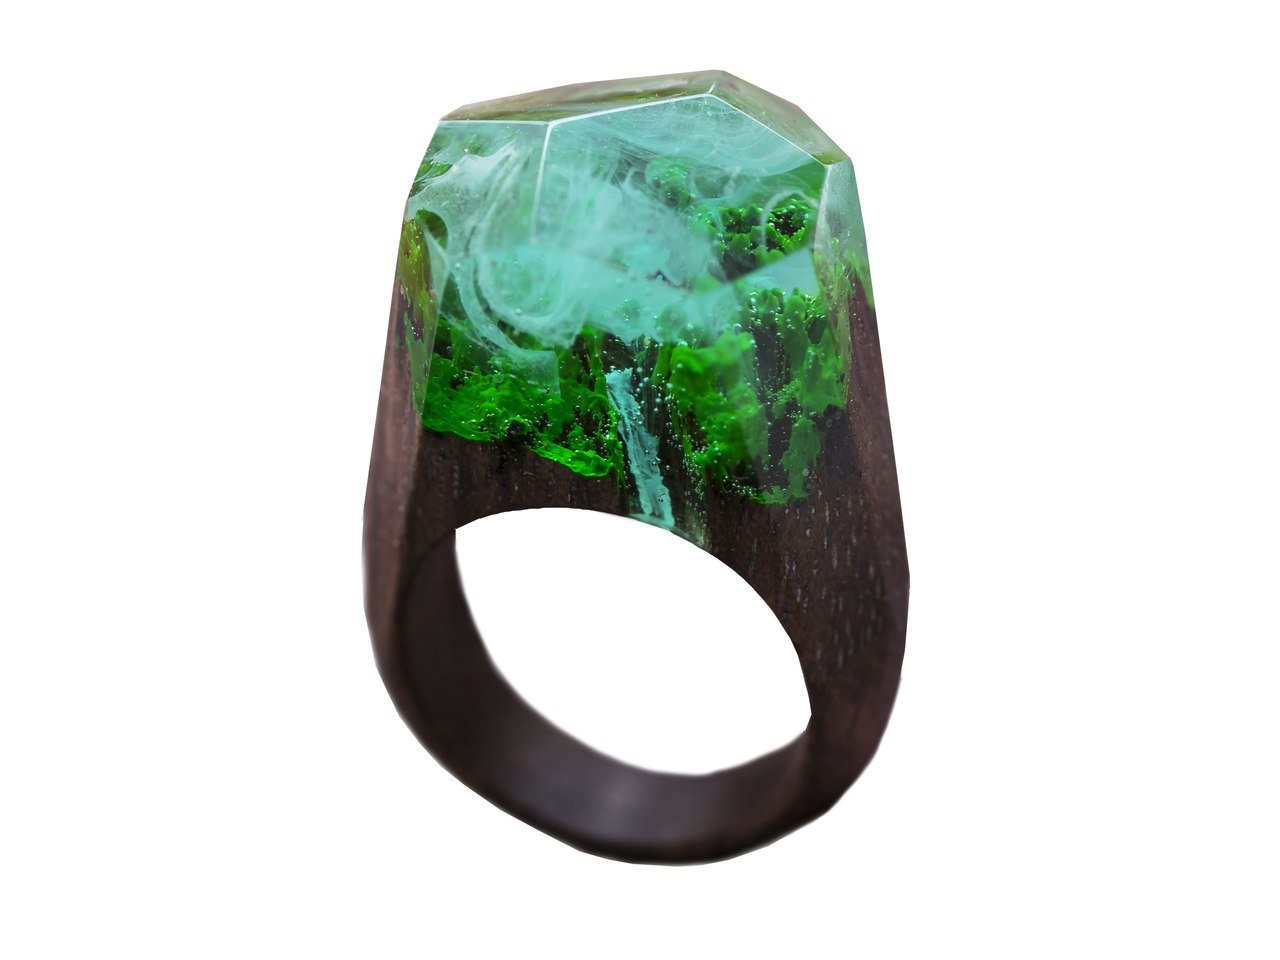 Green Wood Waterfall wood resin ring jewelry Handmade designer wood resign rings for women with landscape (9.5)